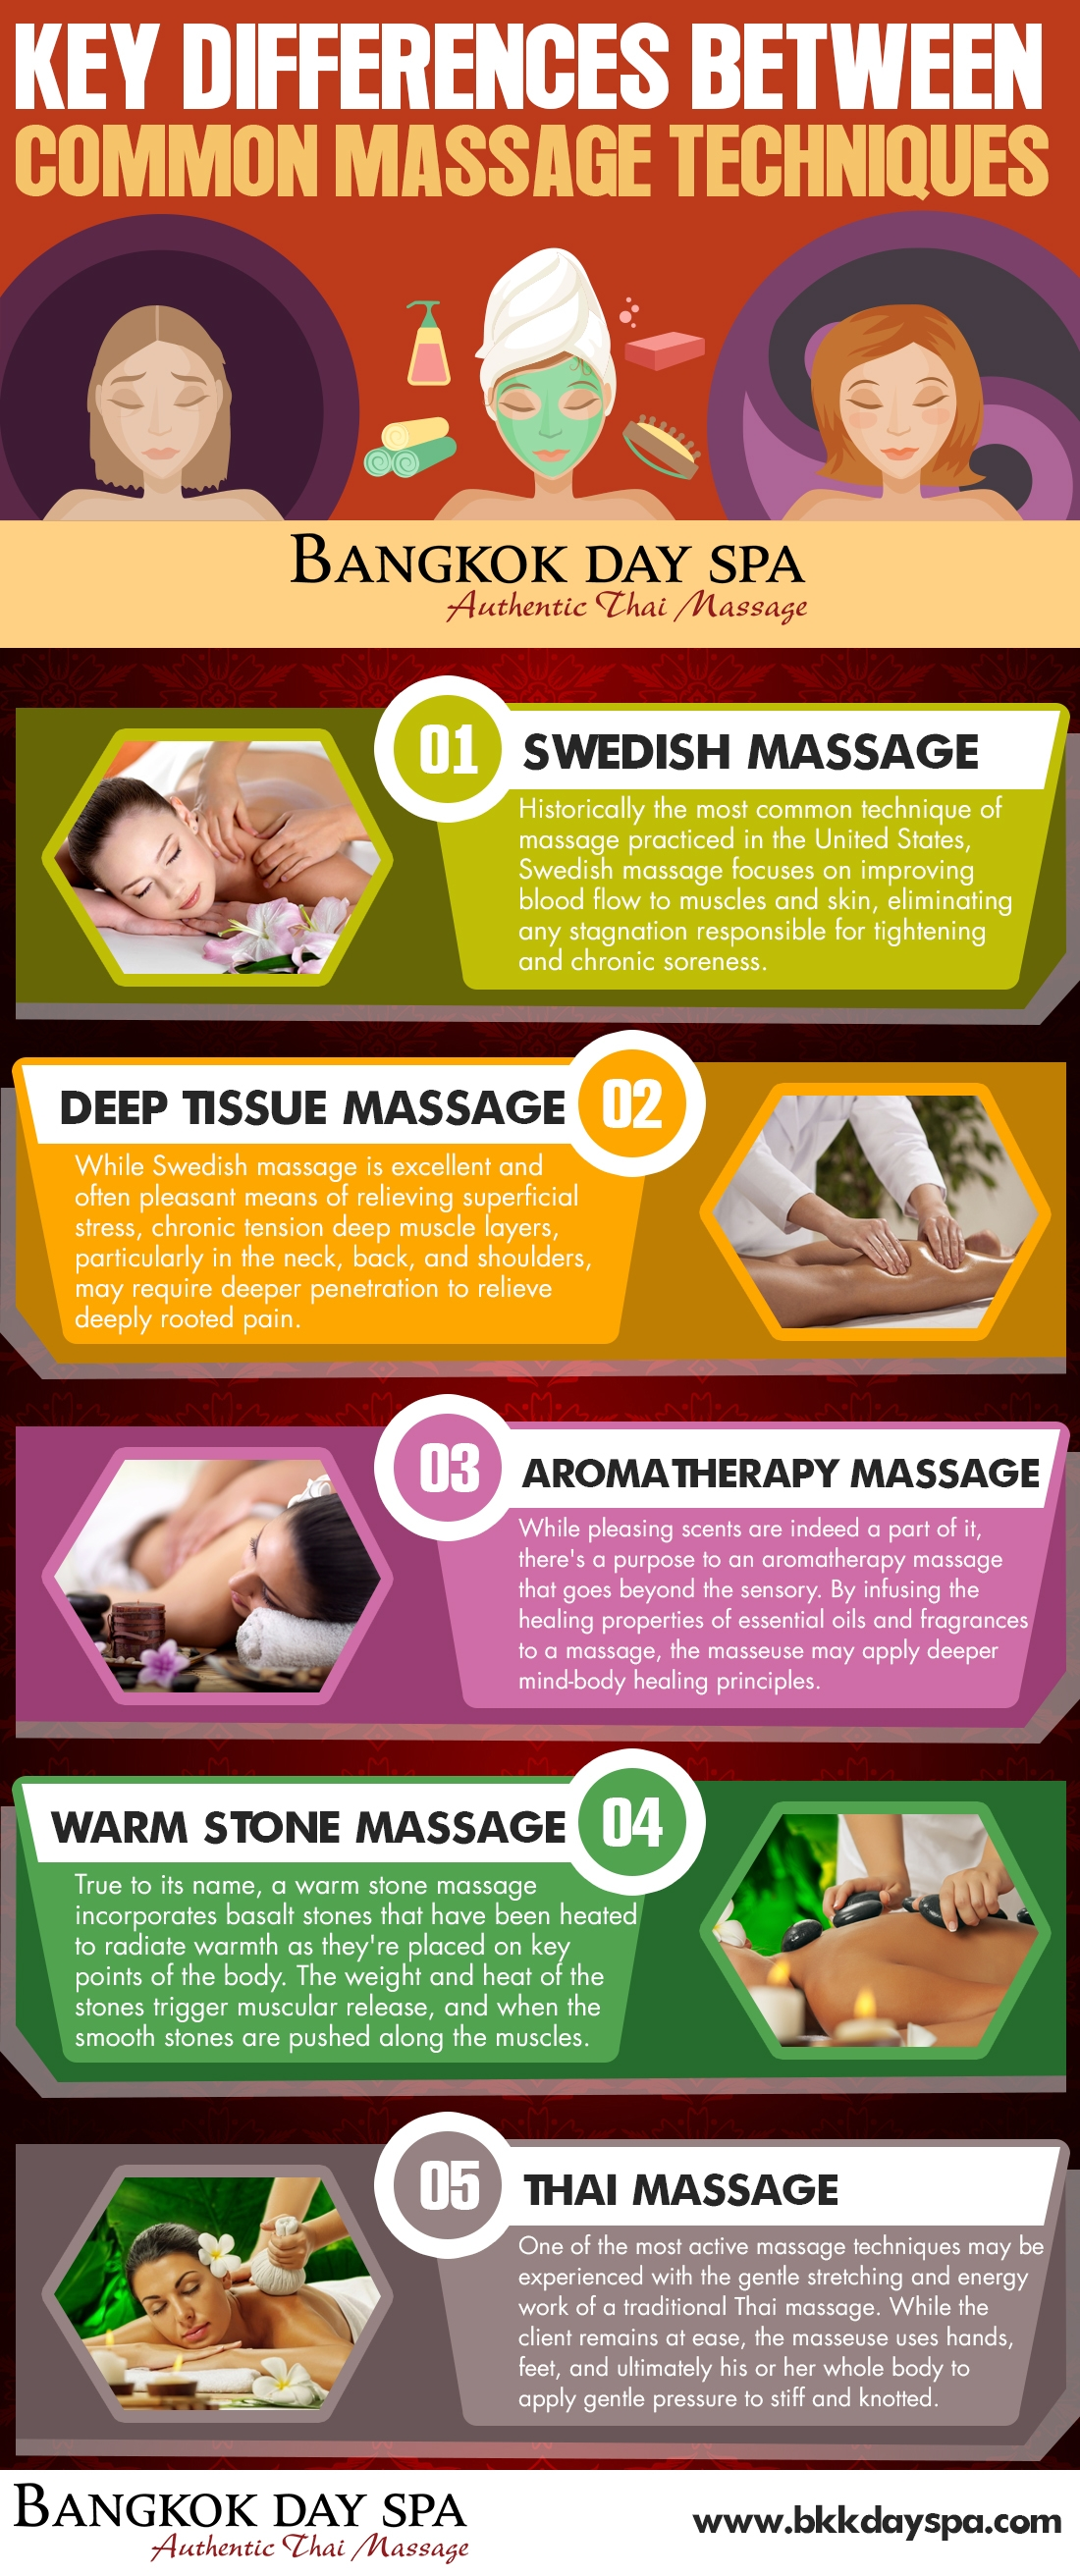 Infographic on Key Differences Between Common Massage Techniques